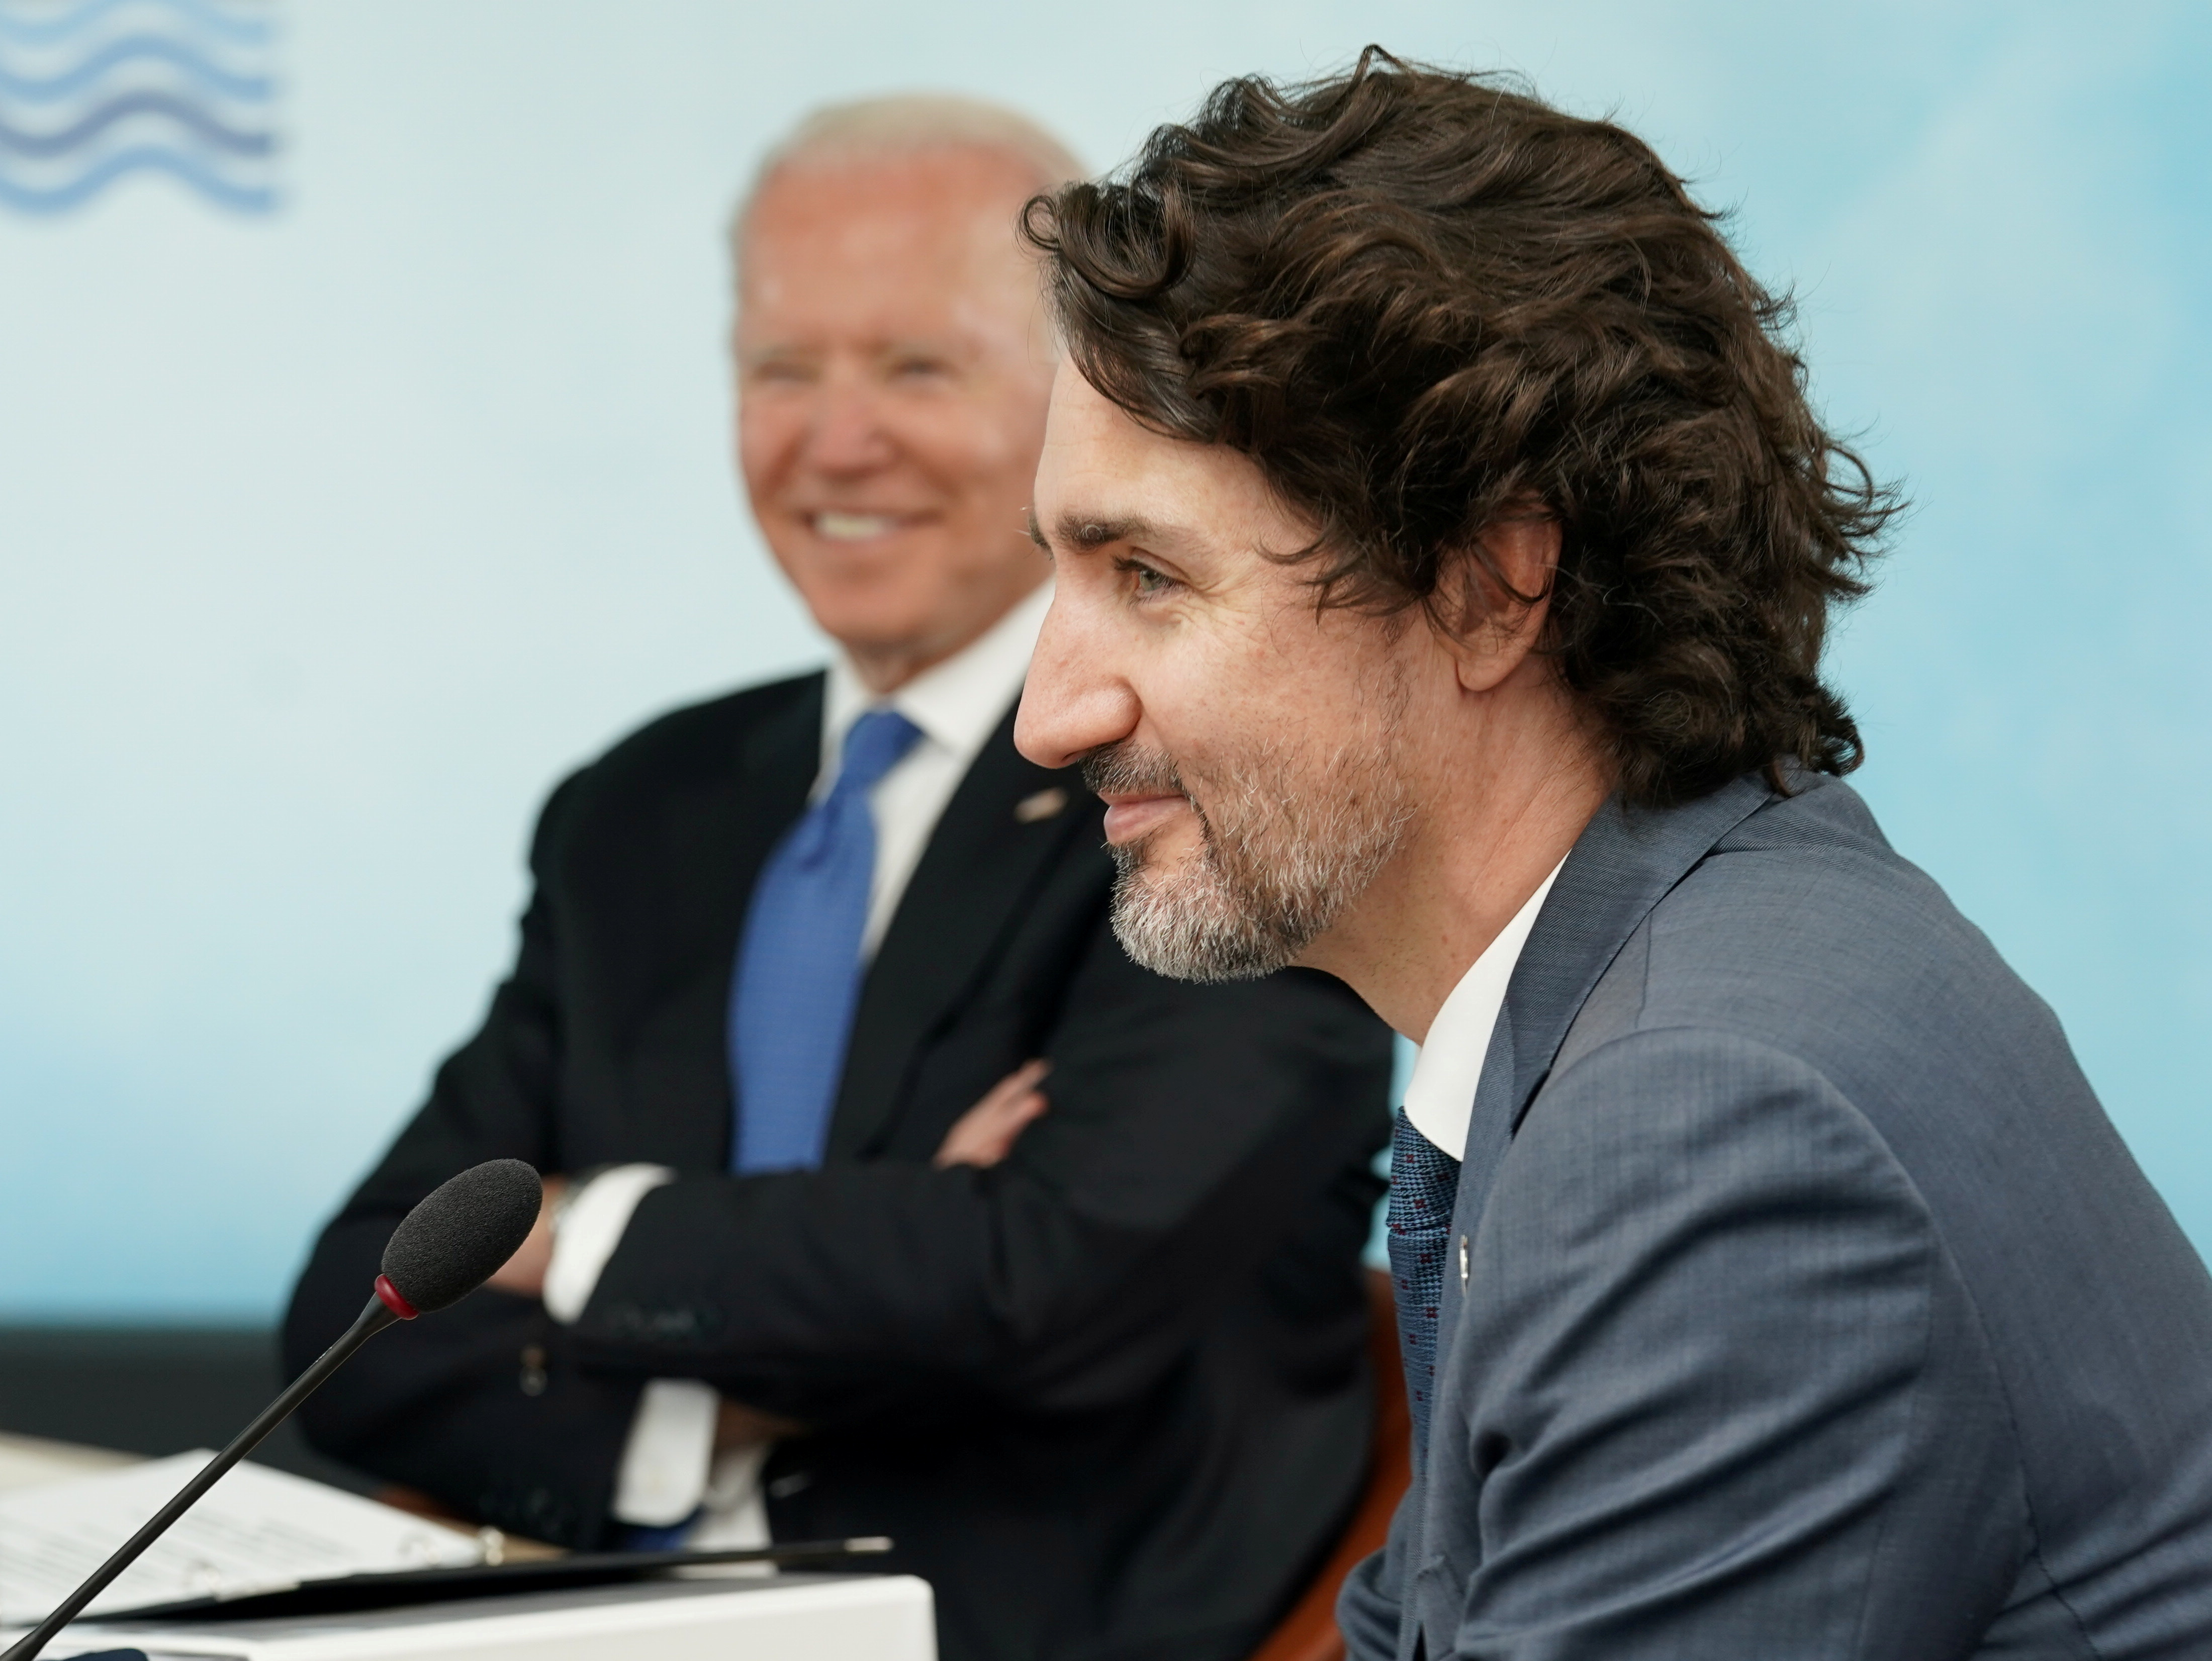 U.S. President Joe Biden and Canada's Prime Minister Justin Trudeau attend a session during the G7 summit in Carbis Bay, Cornwall, Britain, June 11, 2021. REUTERS/Kevin Lamarque/Pool/File Photo